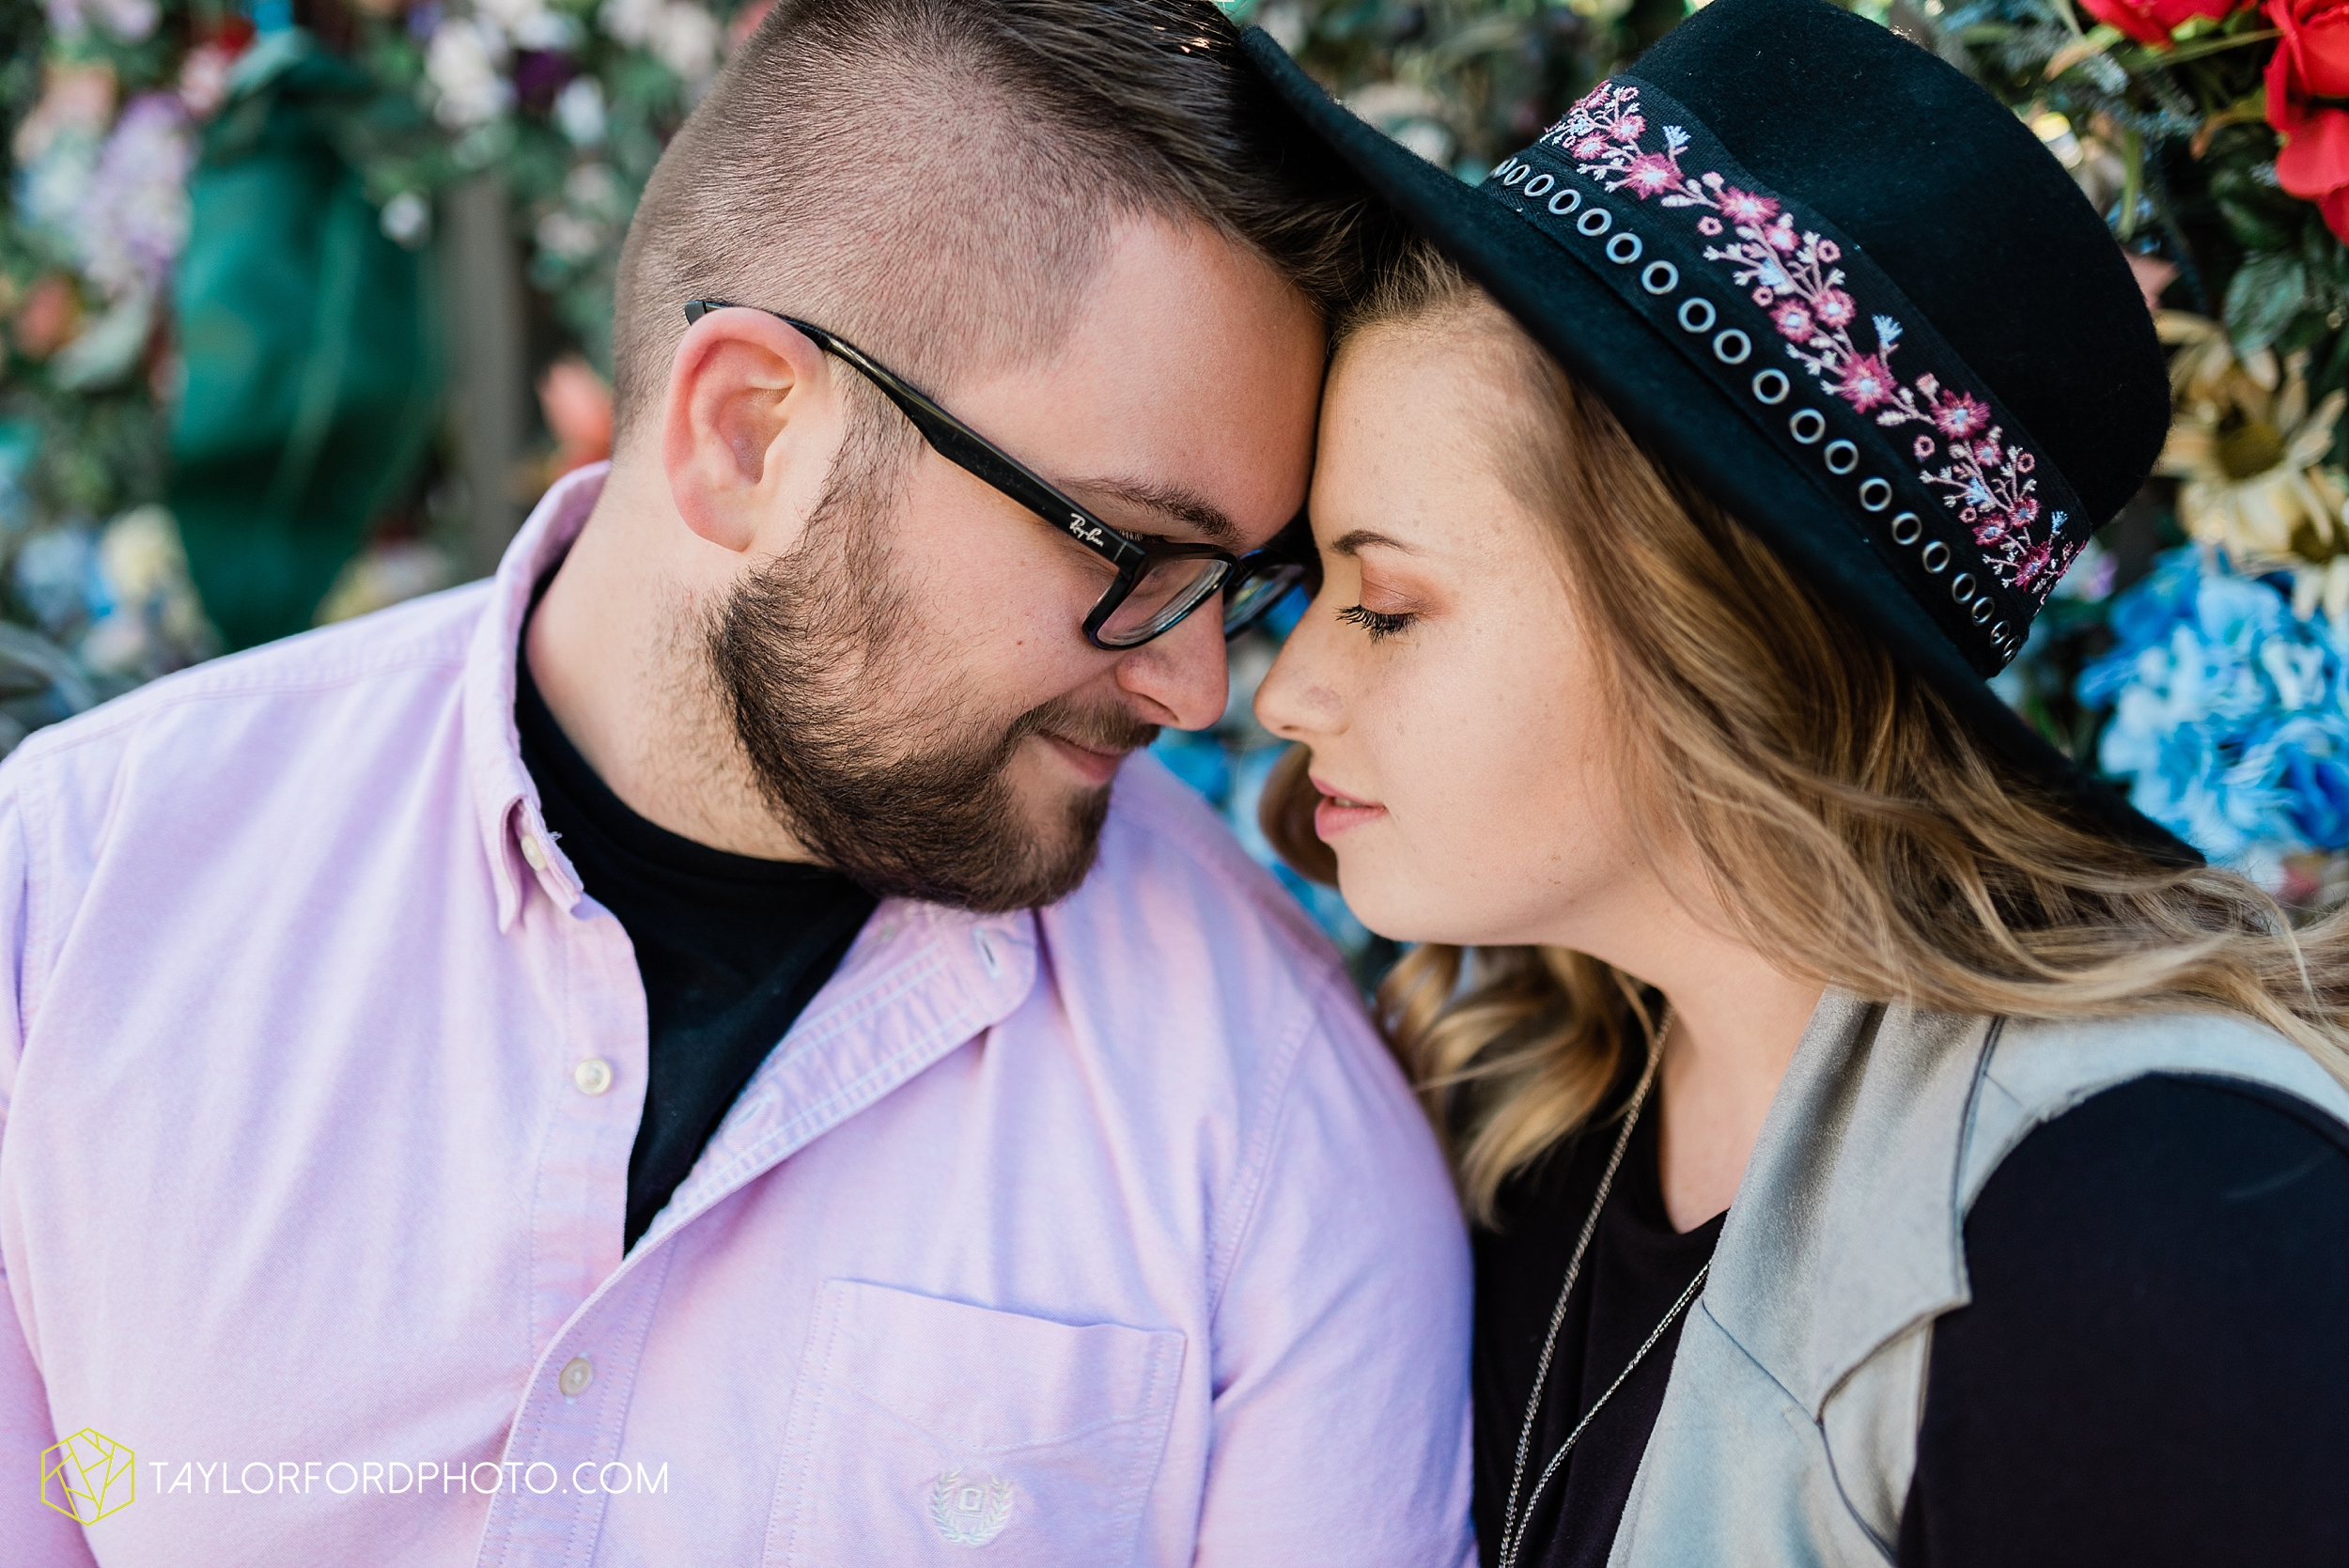 downtown-fort-wayne-engagement-foster-park-bravas-wunderkamer-fox-island-quarry-photographer-taylor-ford-photography_0961.jpg